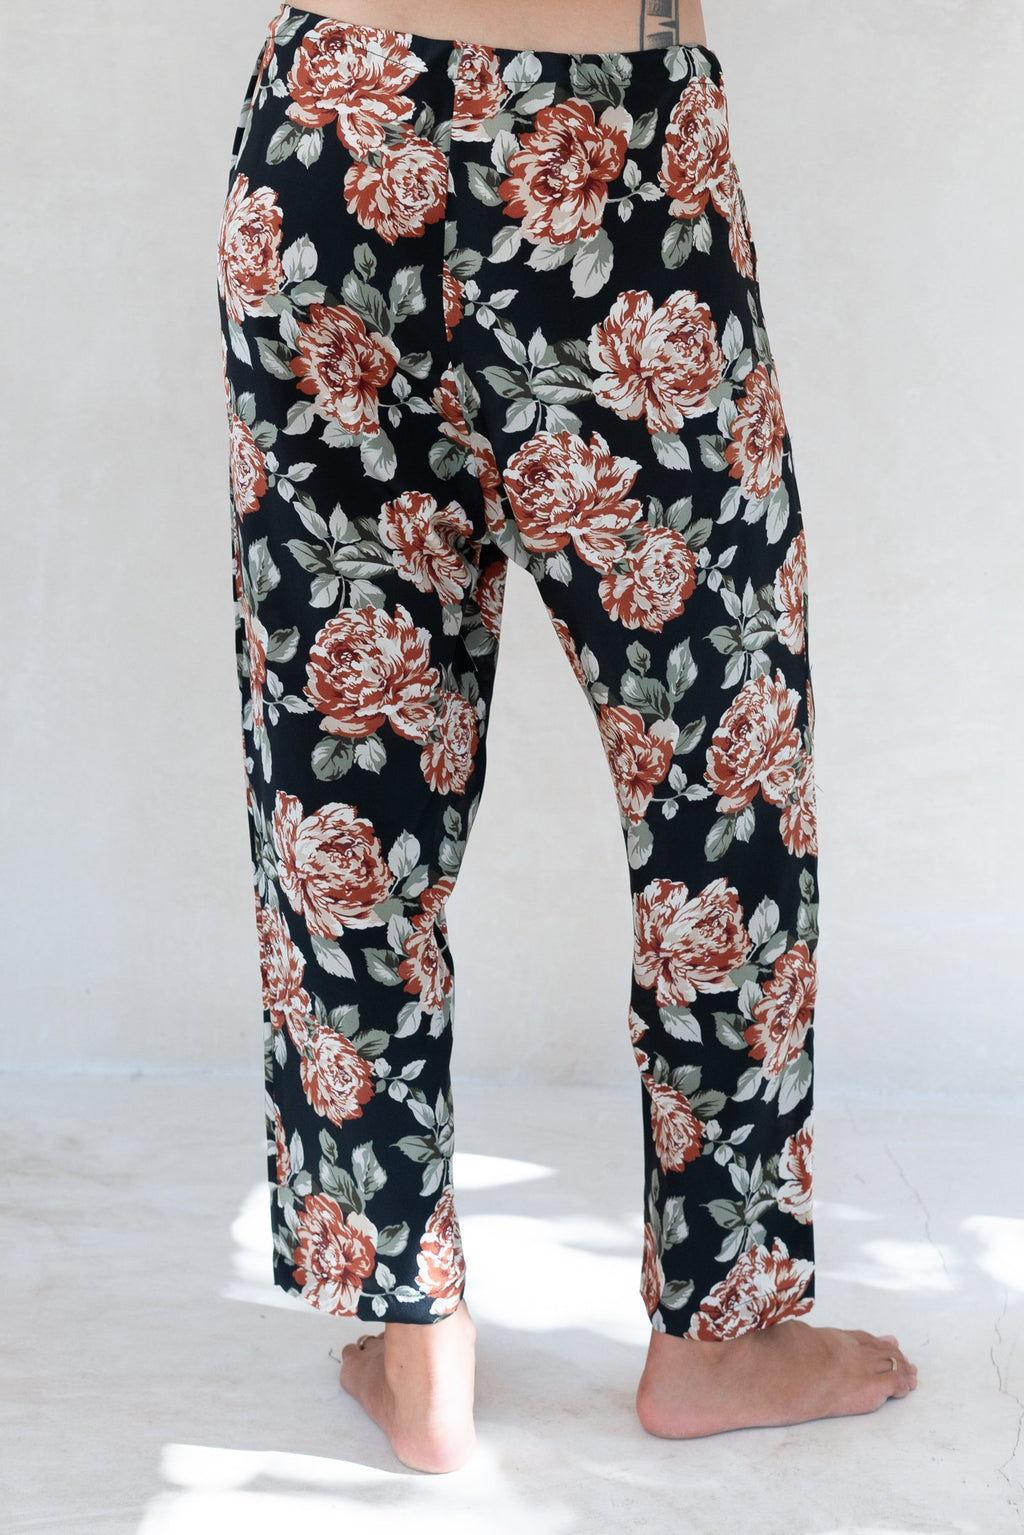 Yosh Silk Love Pants